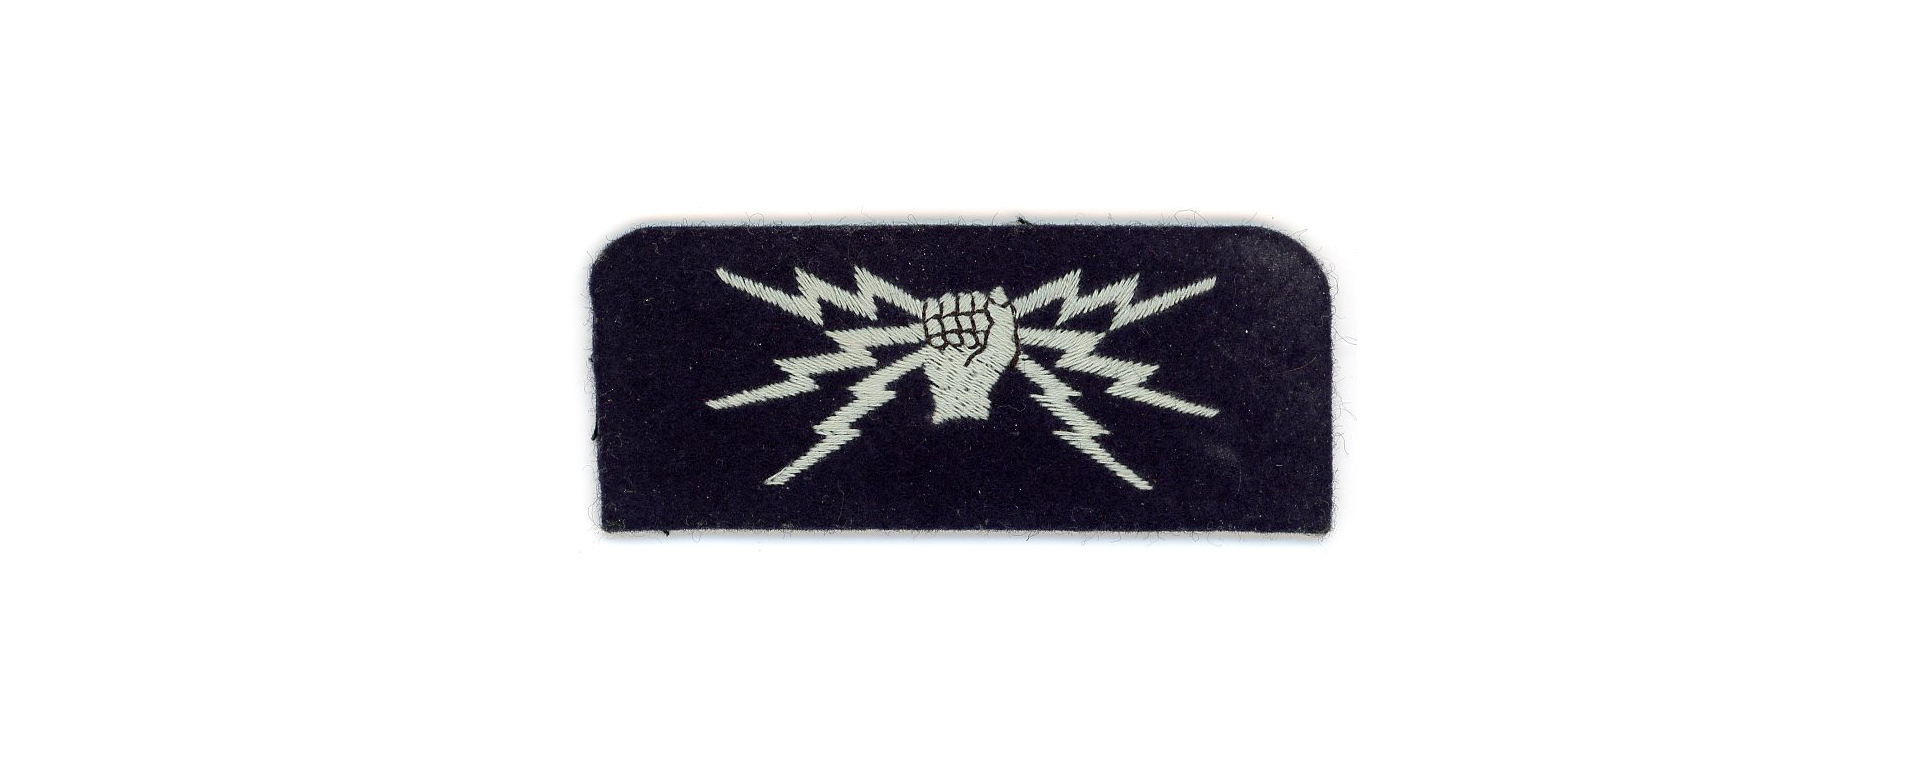 A dark blue felt patch with embroidered white fist holding 3 lightning bolts